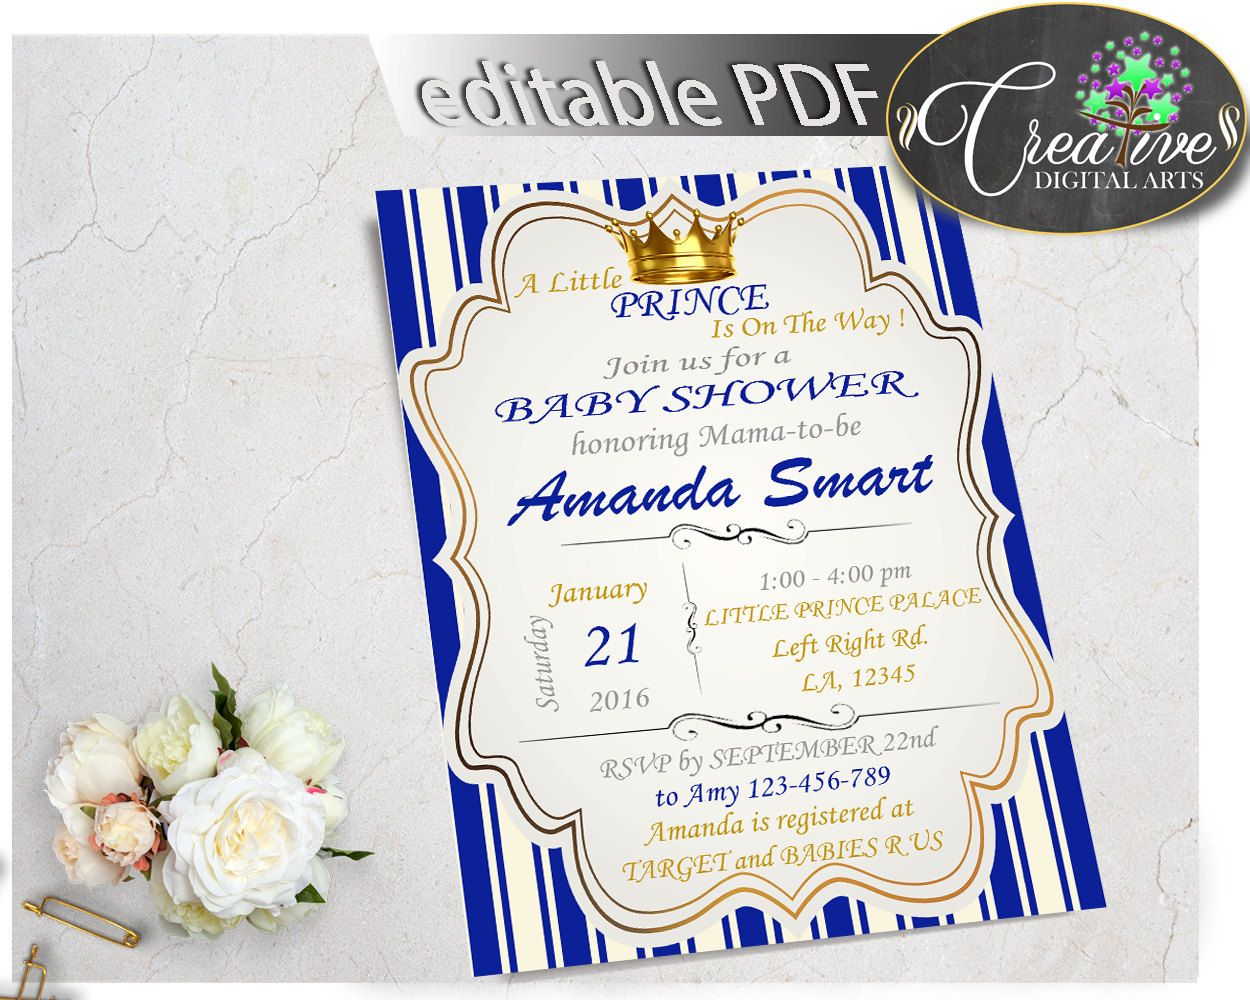 Baby Shower Invitation Royal Baby Shower Royal Invitation Baby ...